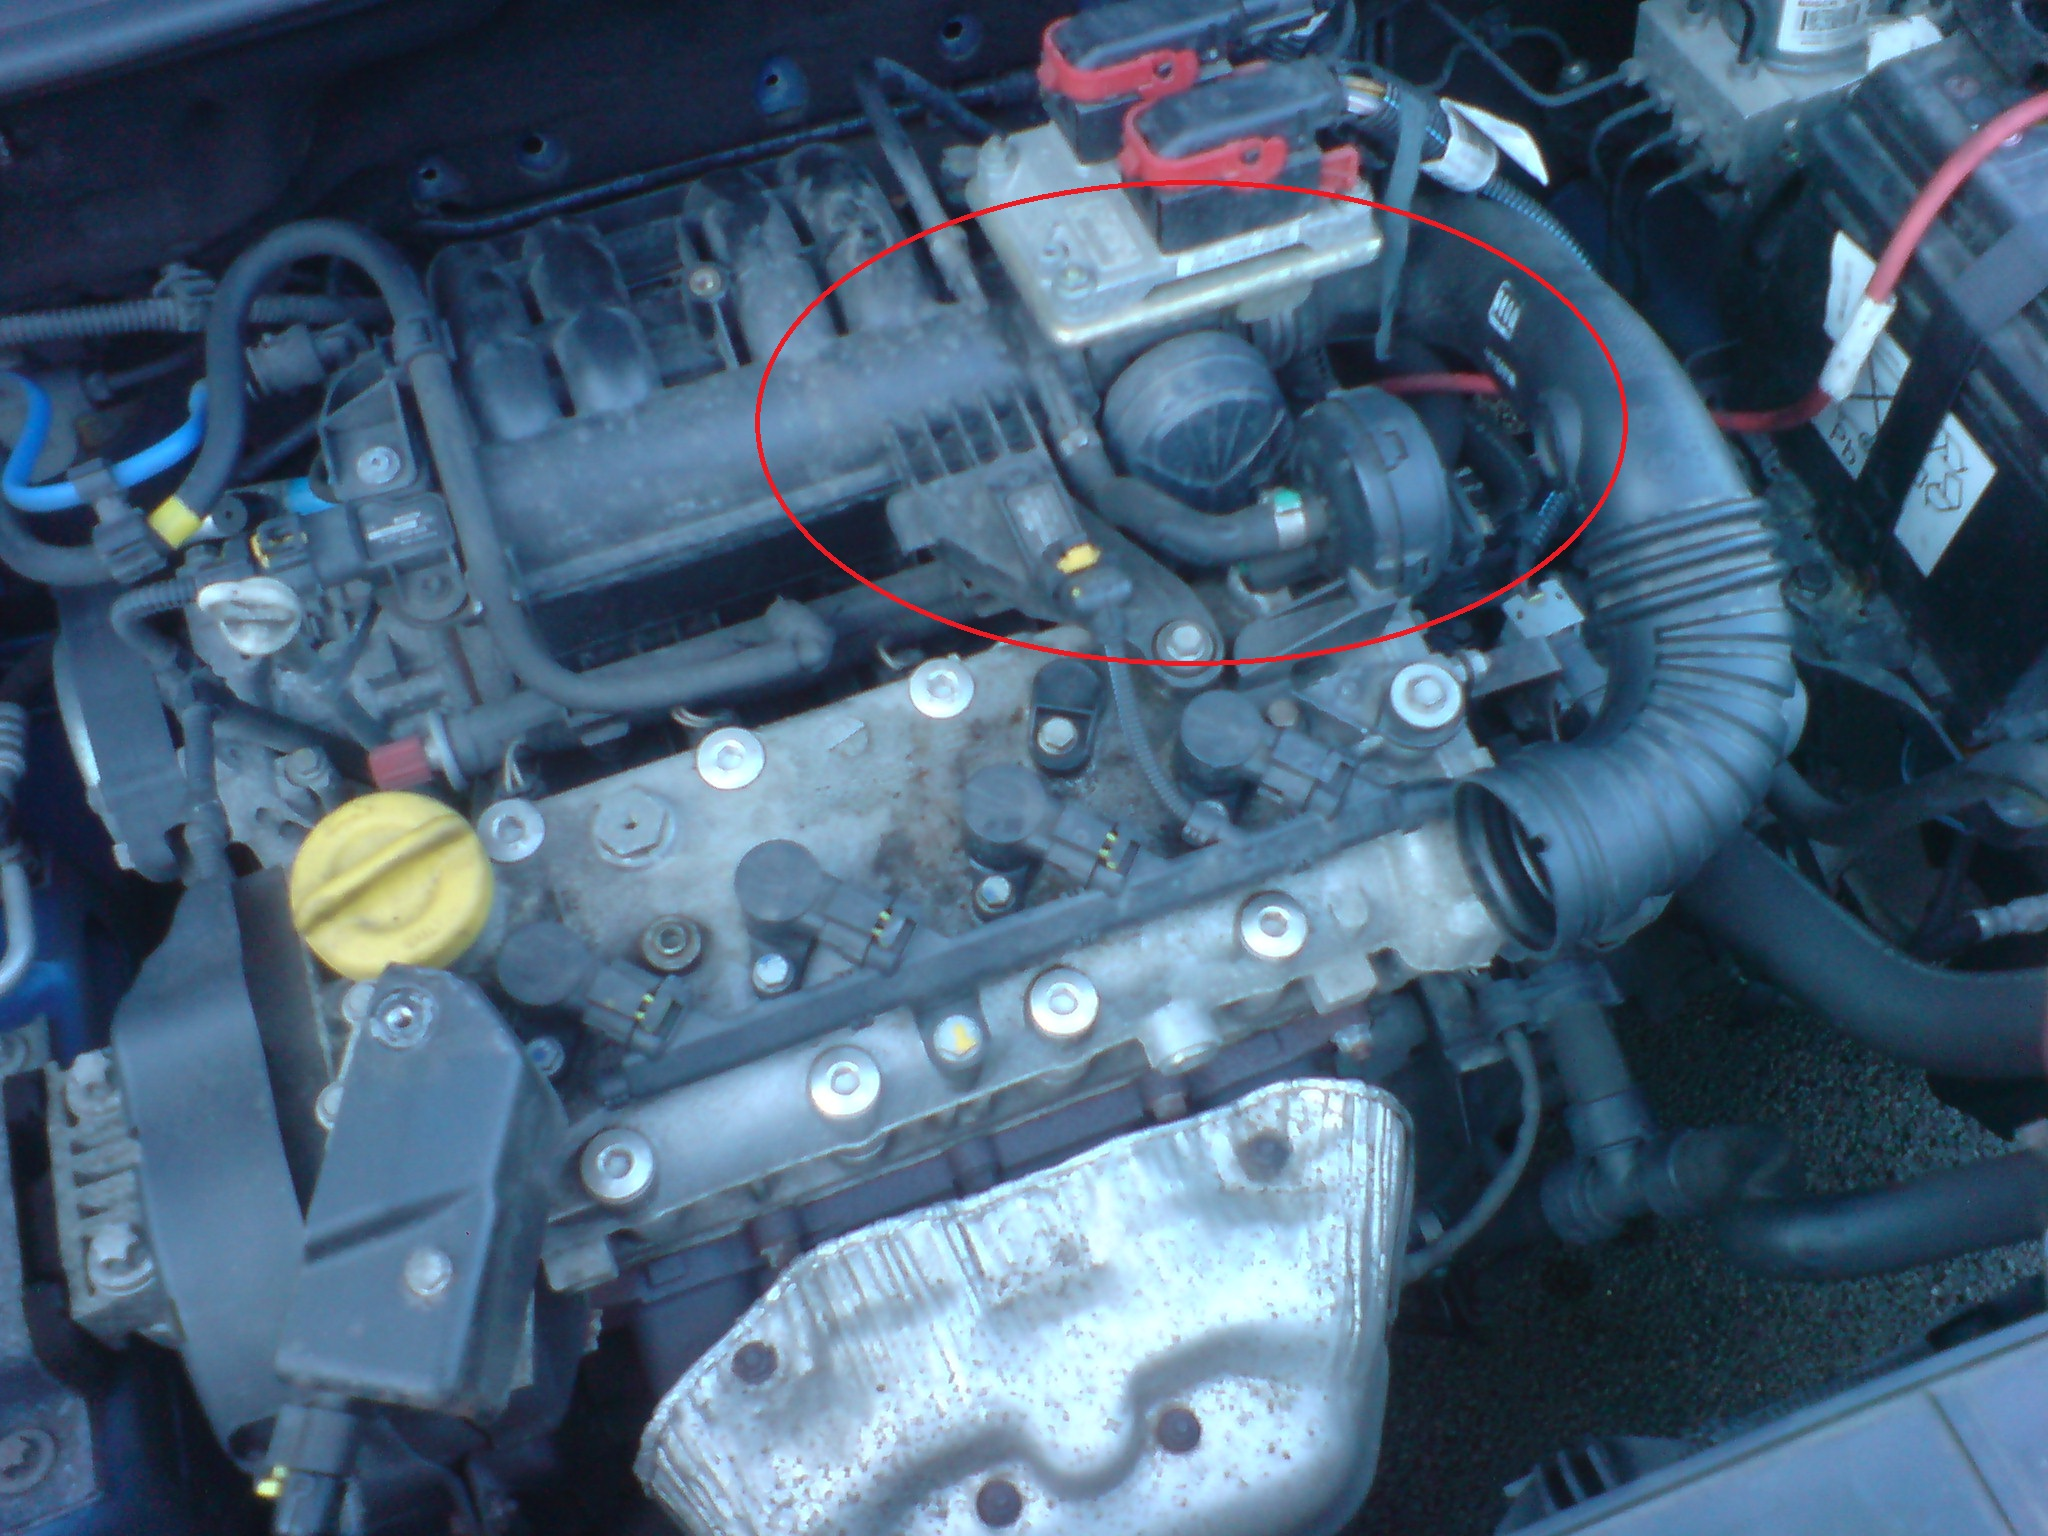 Click image for larger version  Name:engine what is that.jpg Views:27 Size:679.1 KB ID:94944